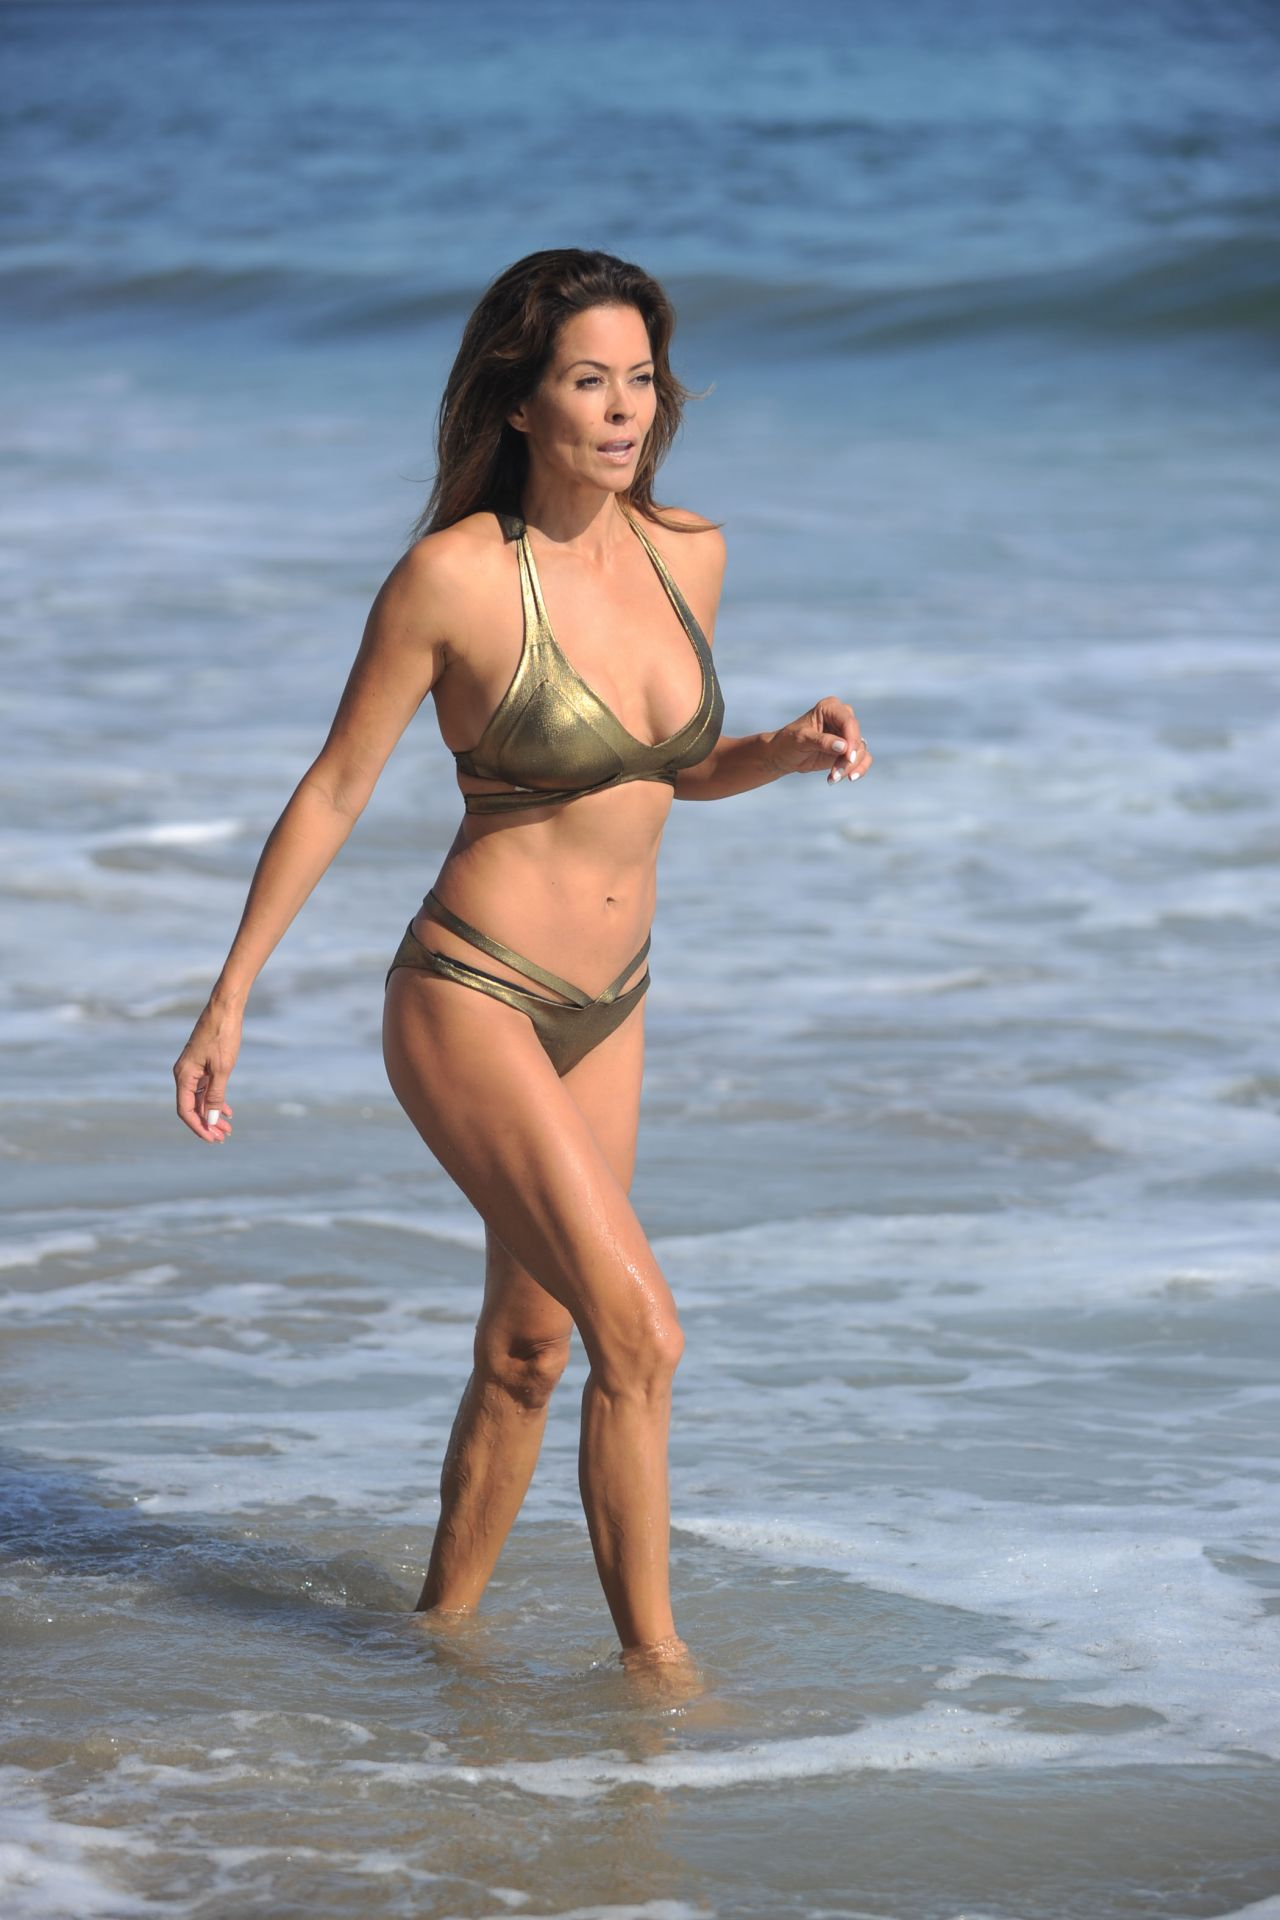 Discussion on this topic: Amanda Bynes Tweets Her Sexiest Pic Yet, brooke-burke-hot/